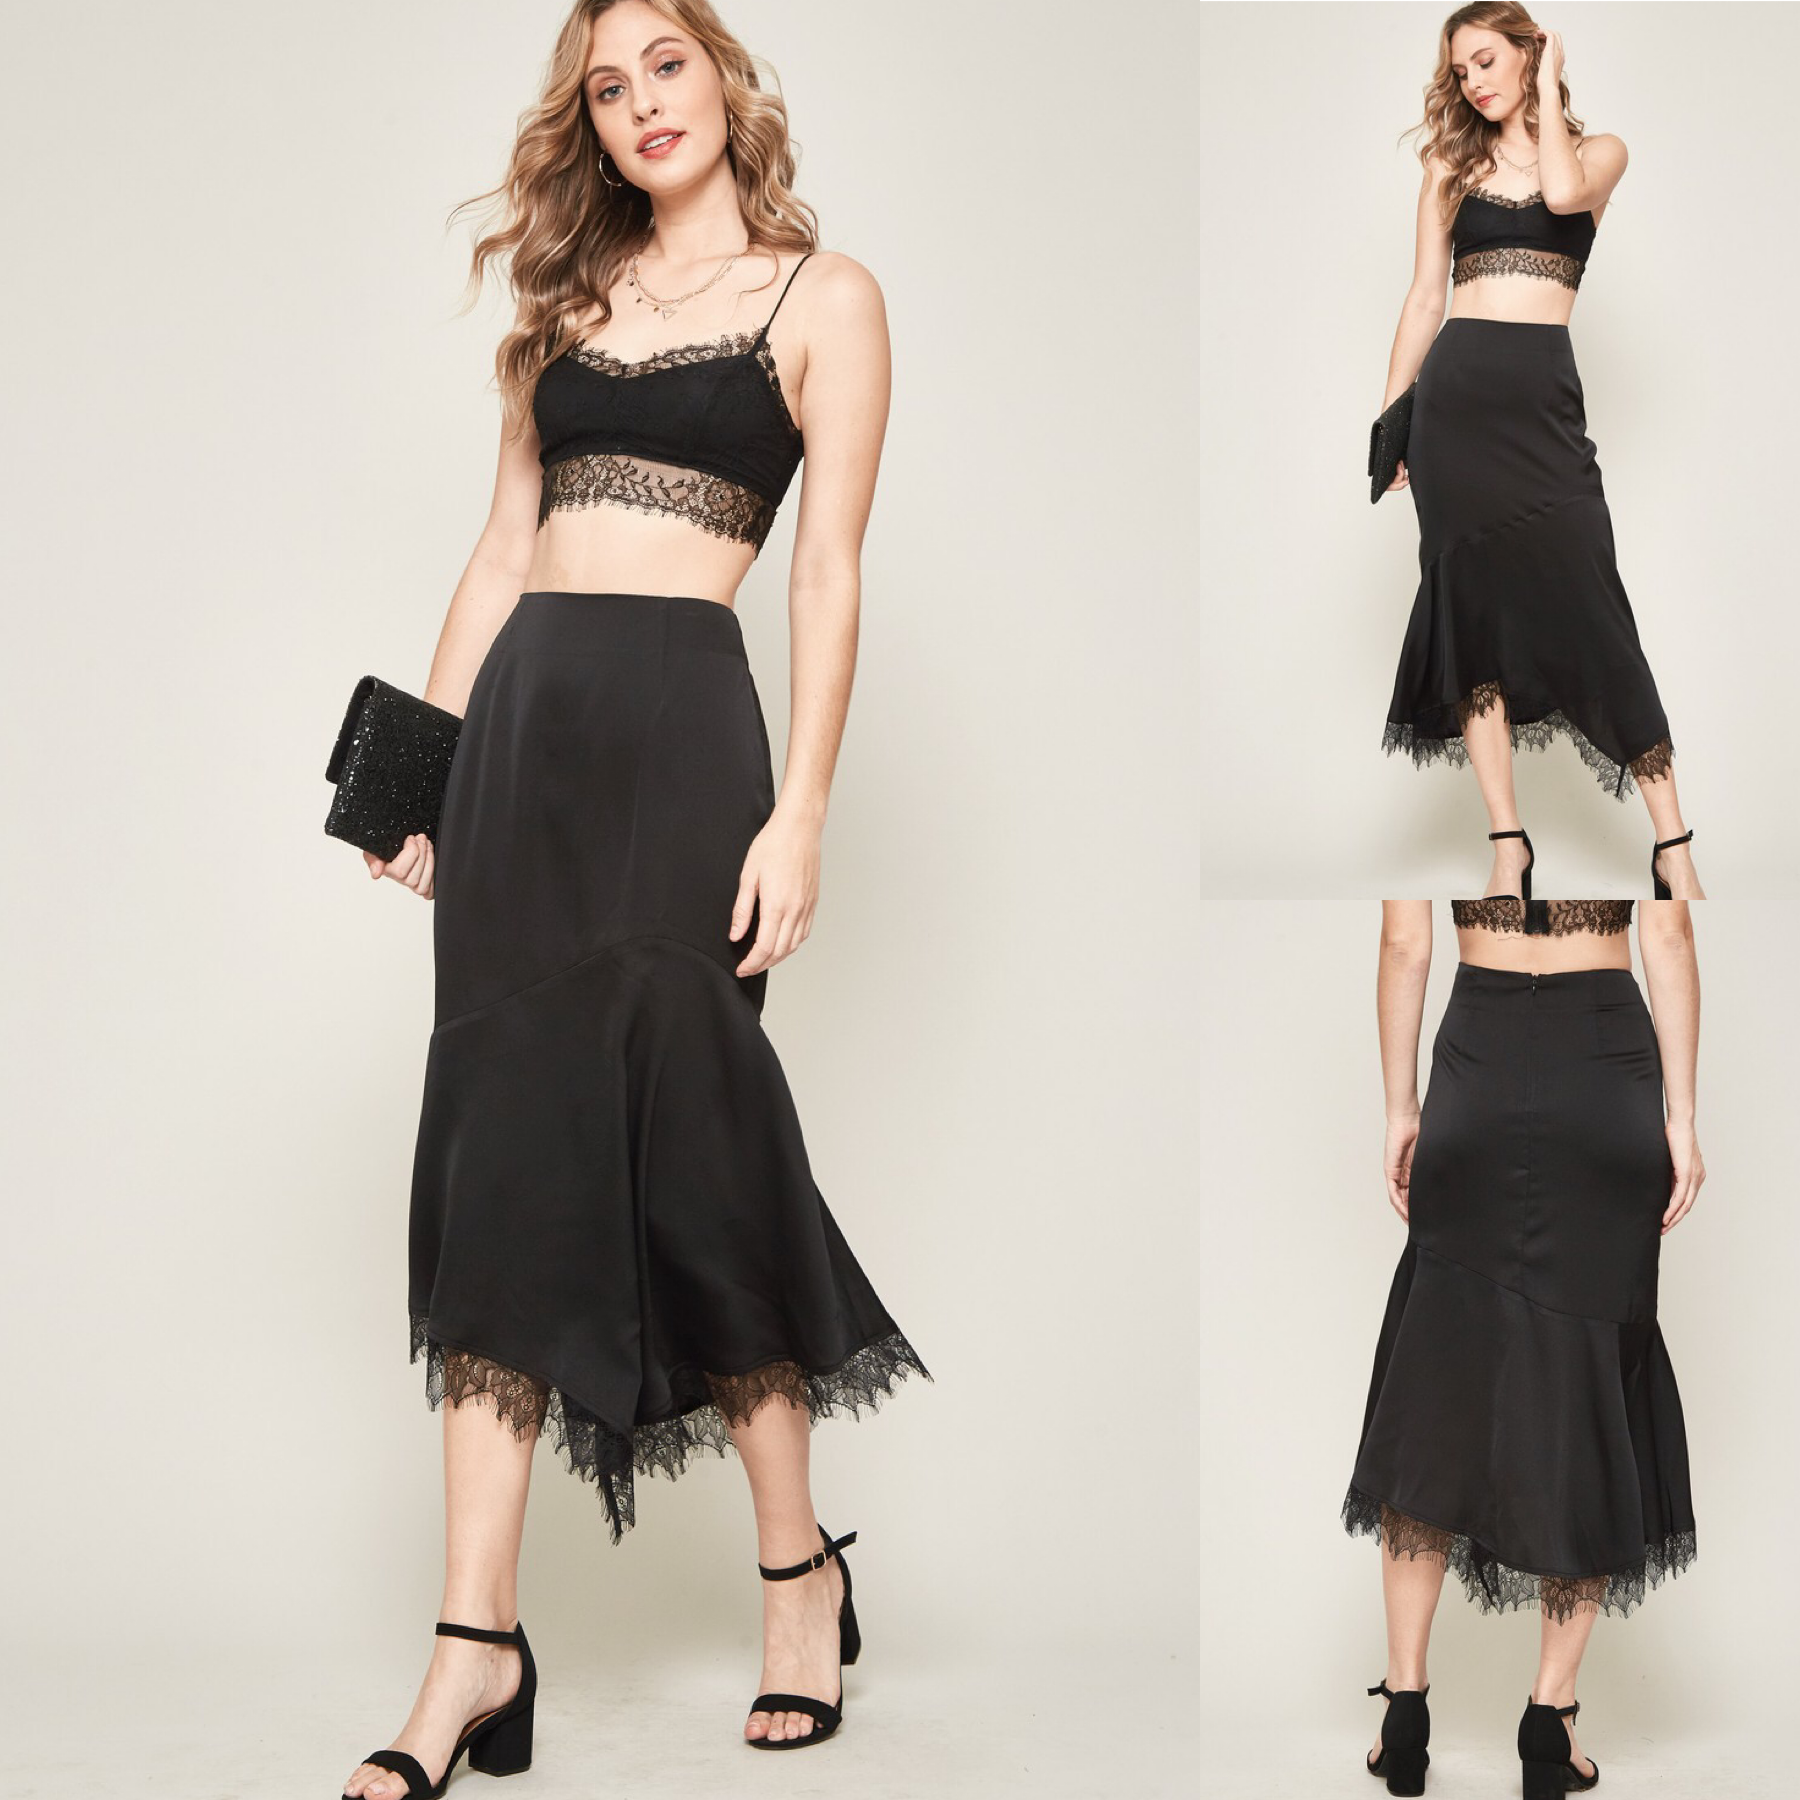 Lace-Trimmed Mermaid Skirt